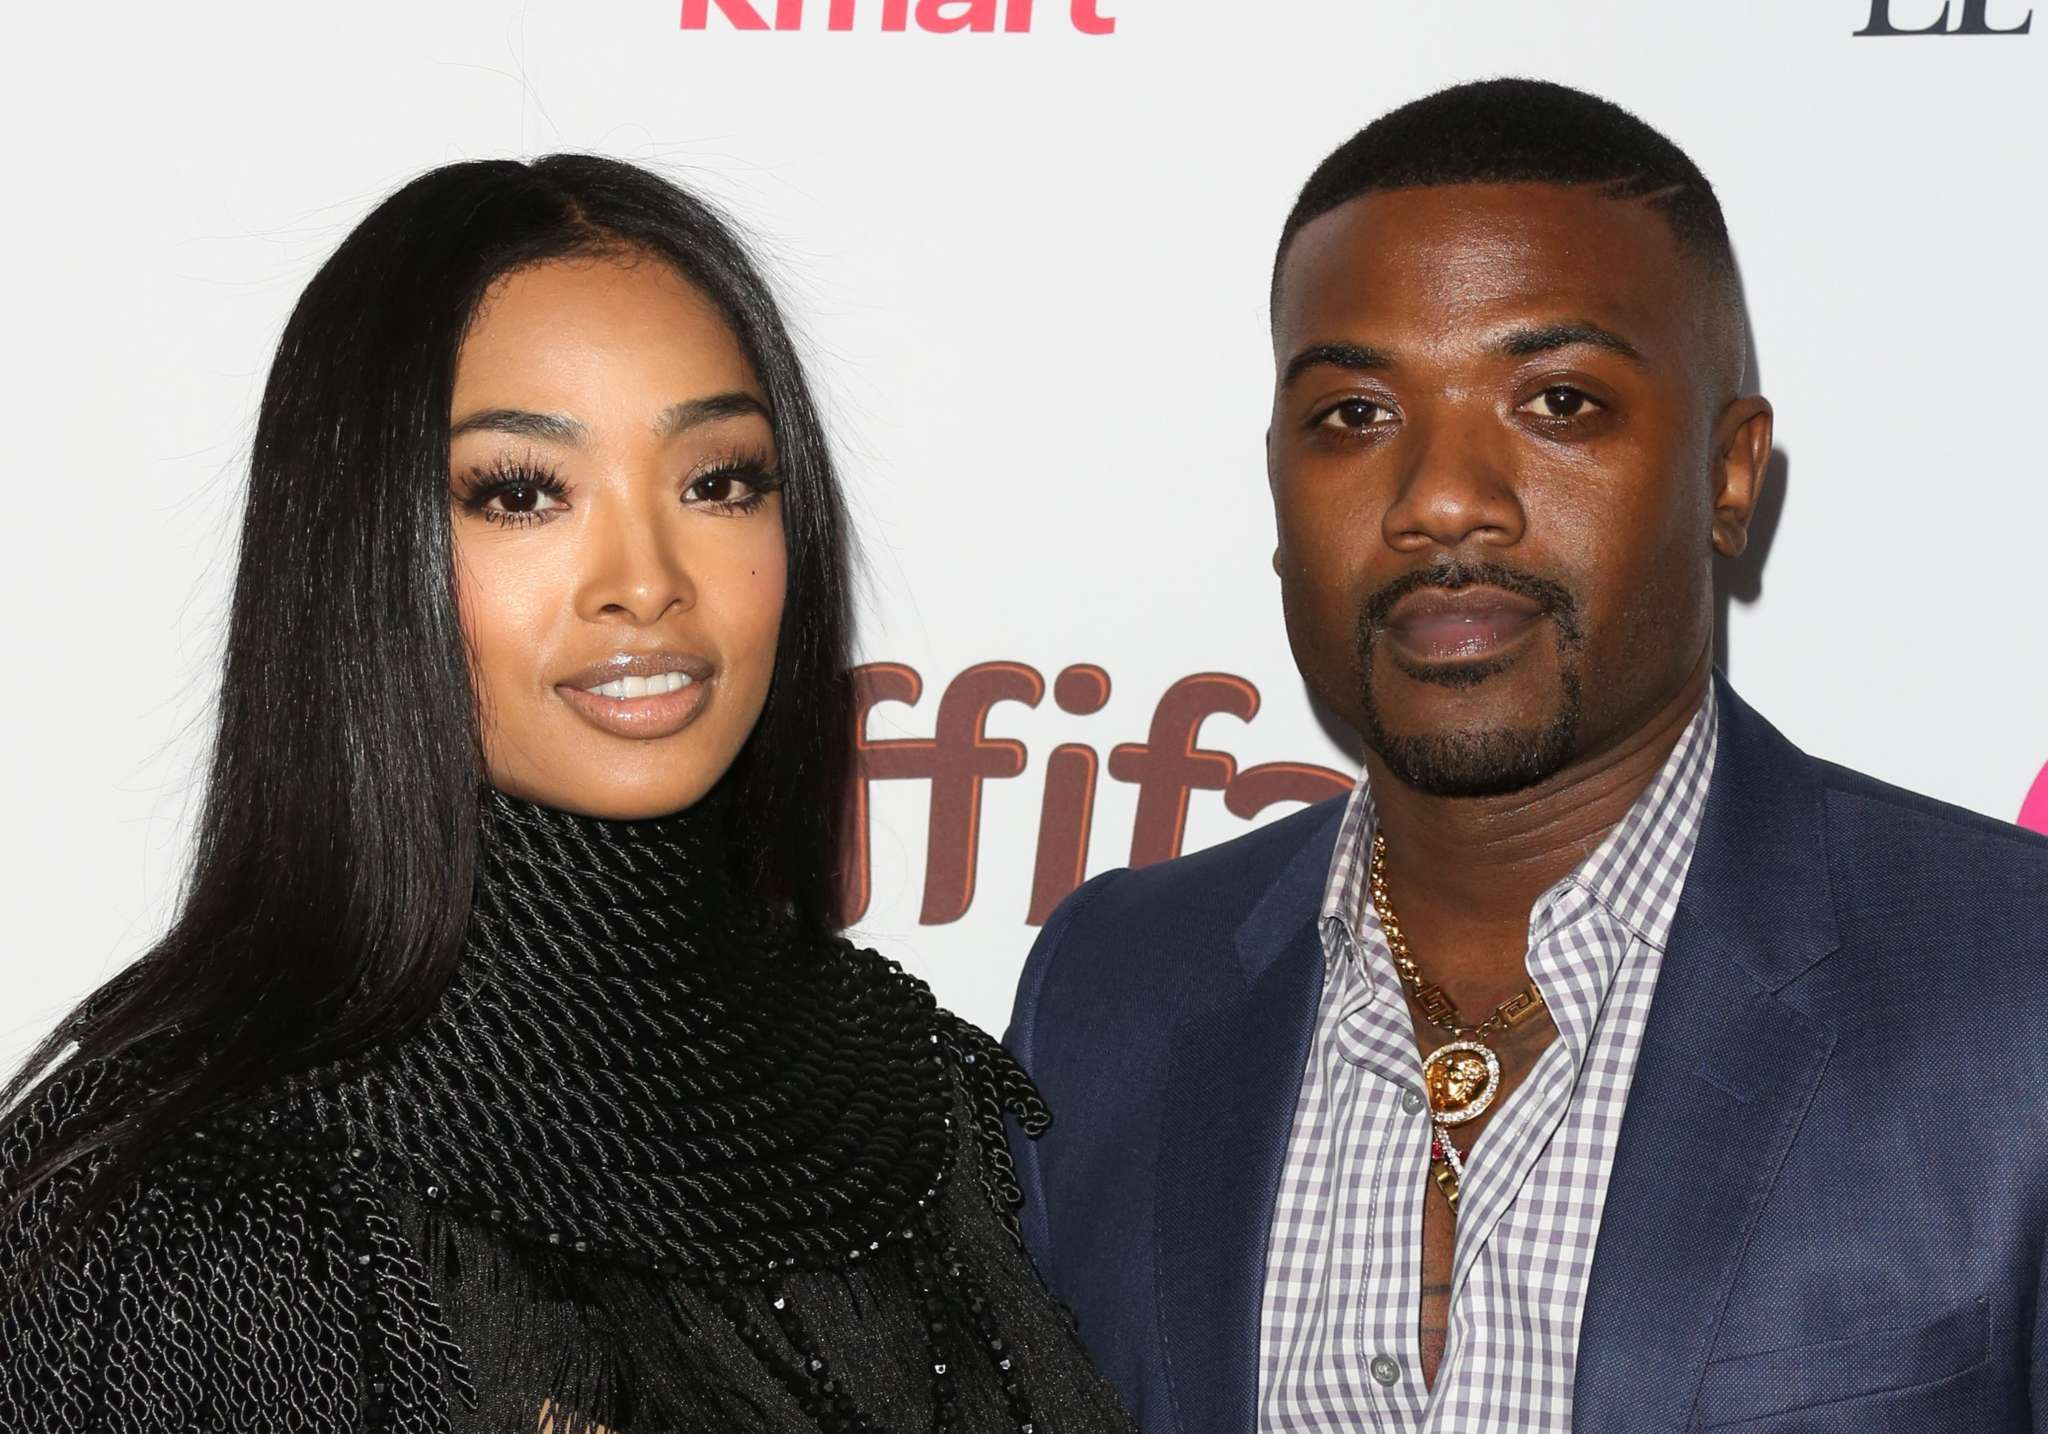 Ray J And Princess Love Reveal Third Baby Plans Despite Divorce Drama Only 3 Months Ago!